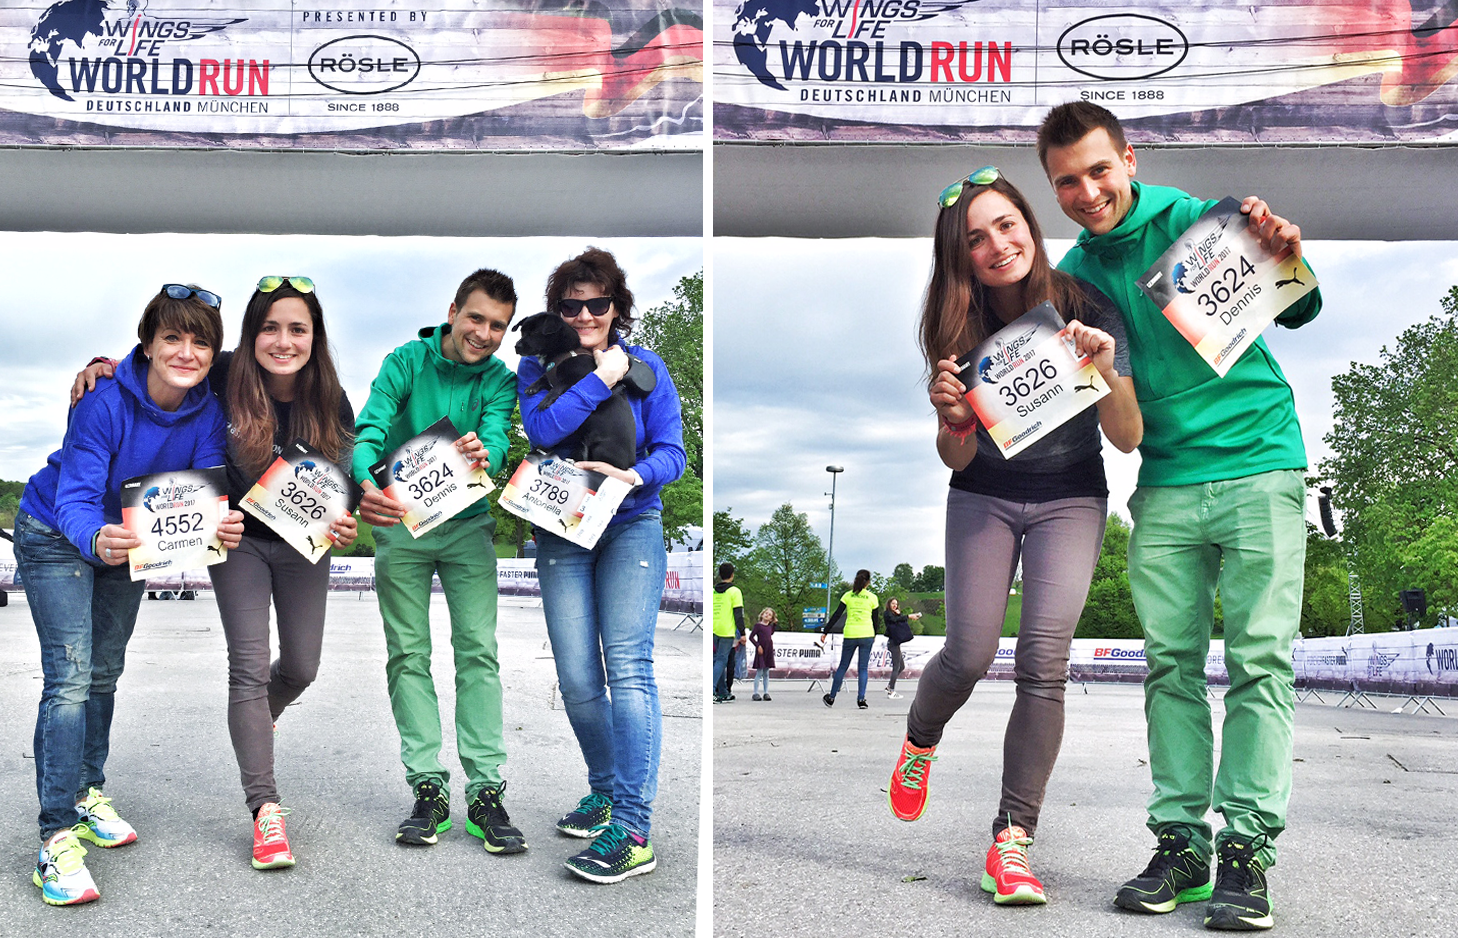 Startunterlagen beim Wings For Life World Run in München